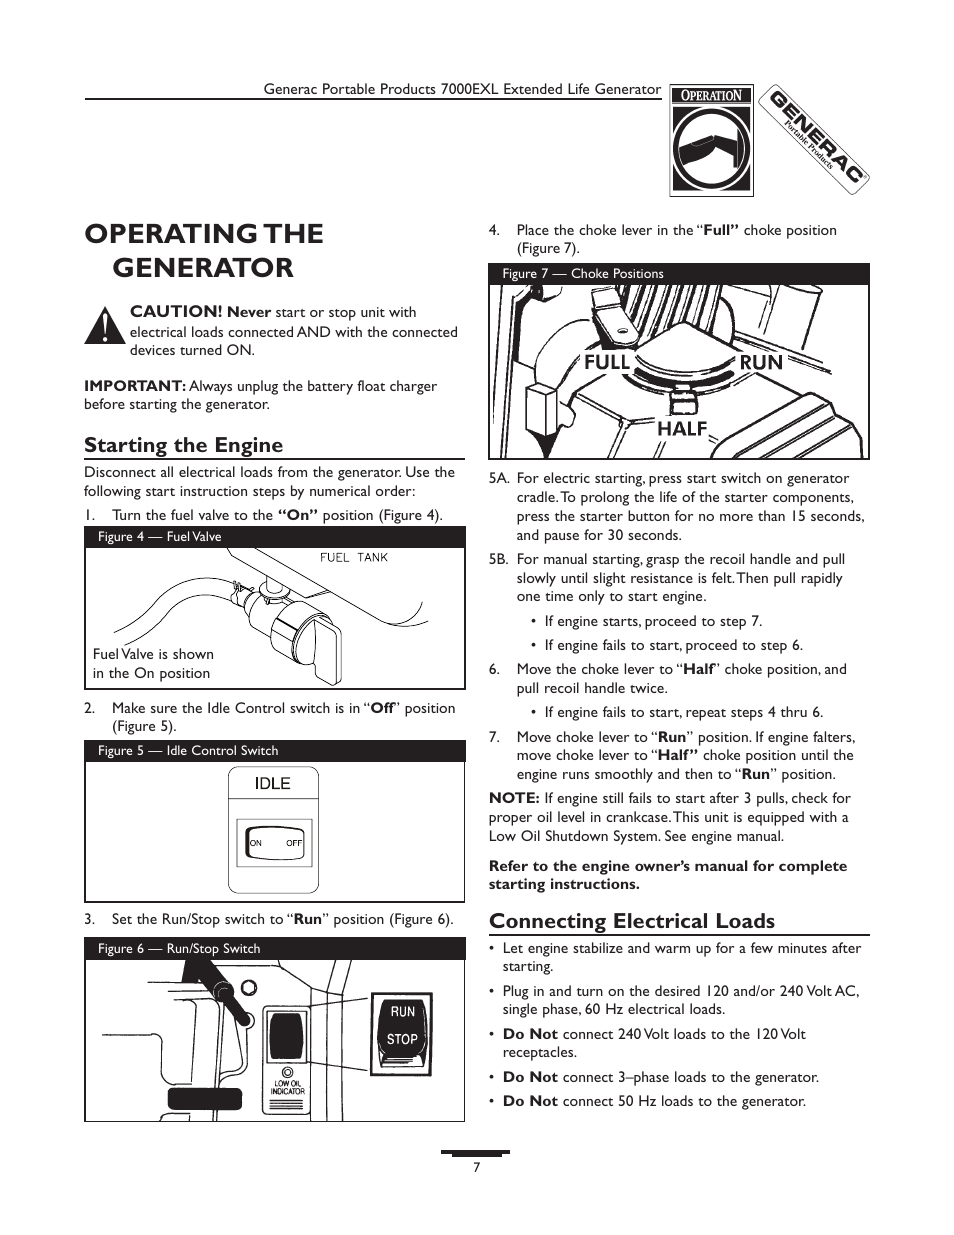 Operating The Generator Starting Engine Connecting Electrical 240 110 Volt Ac Wiring Diagram Loads Generac 7000exl User Manual Page 7 24